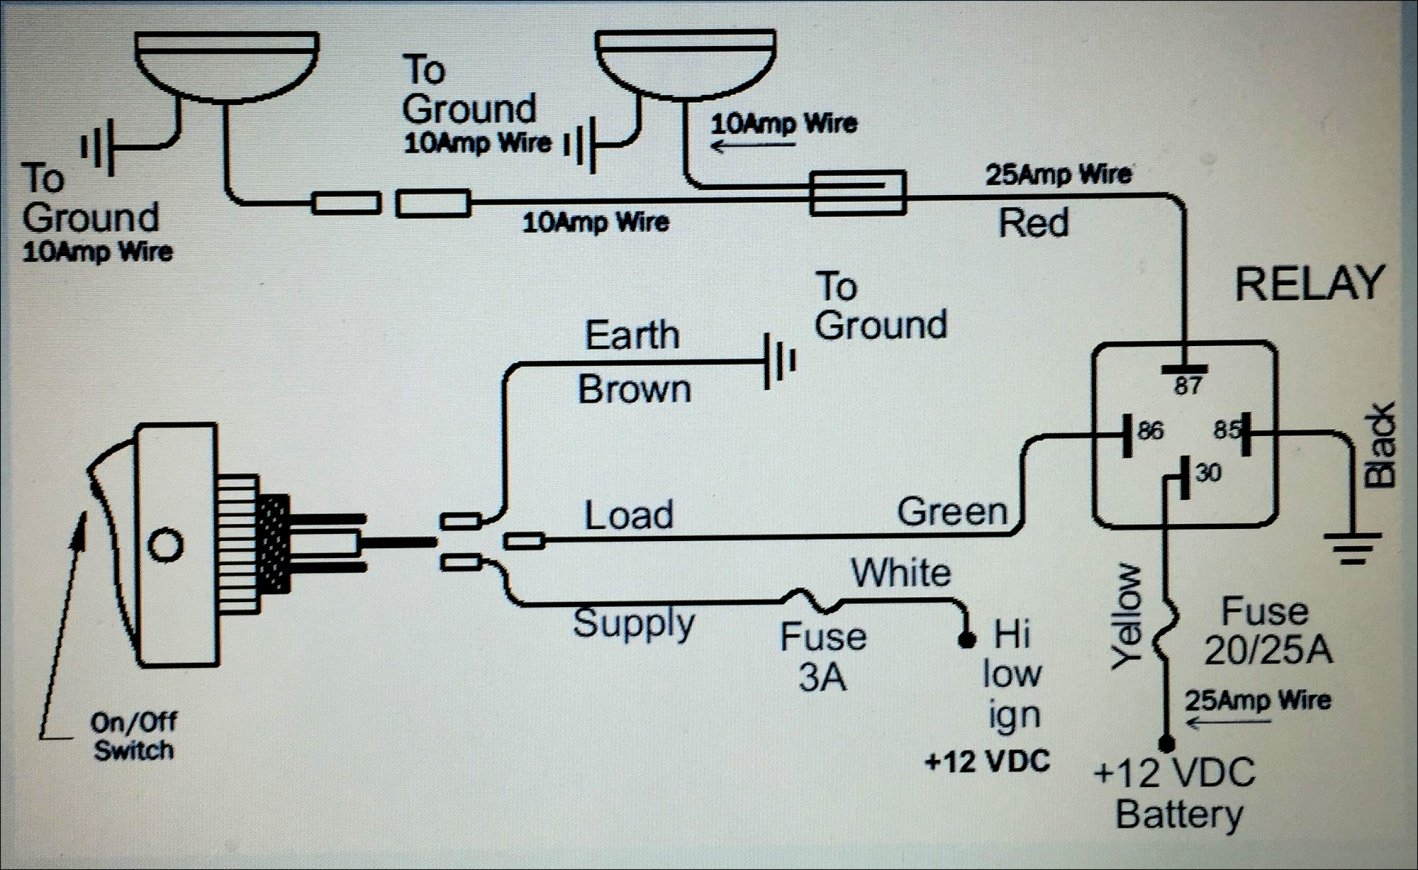 Wiring Diagram Electrical Chandeliers | Manual E-Books - Chandelier Wiring Diagram